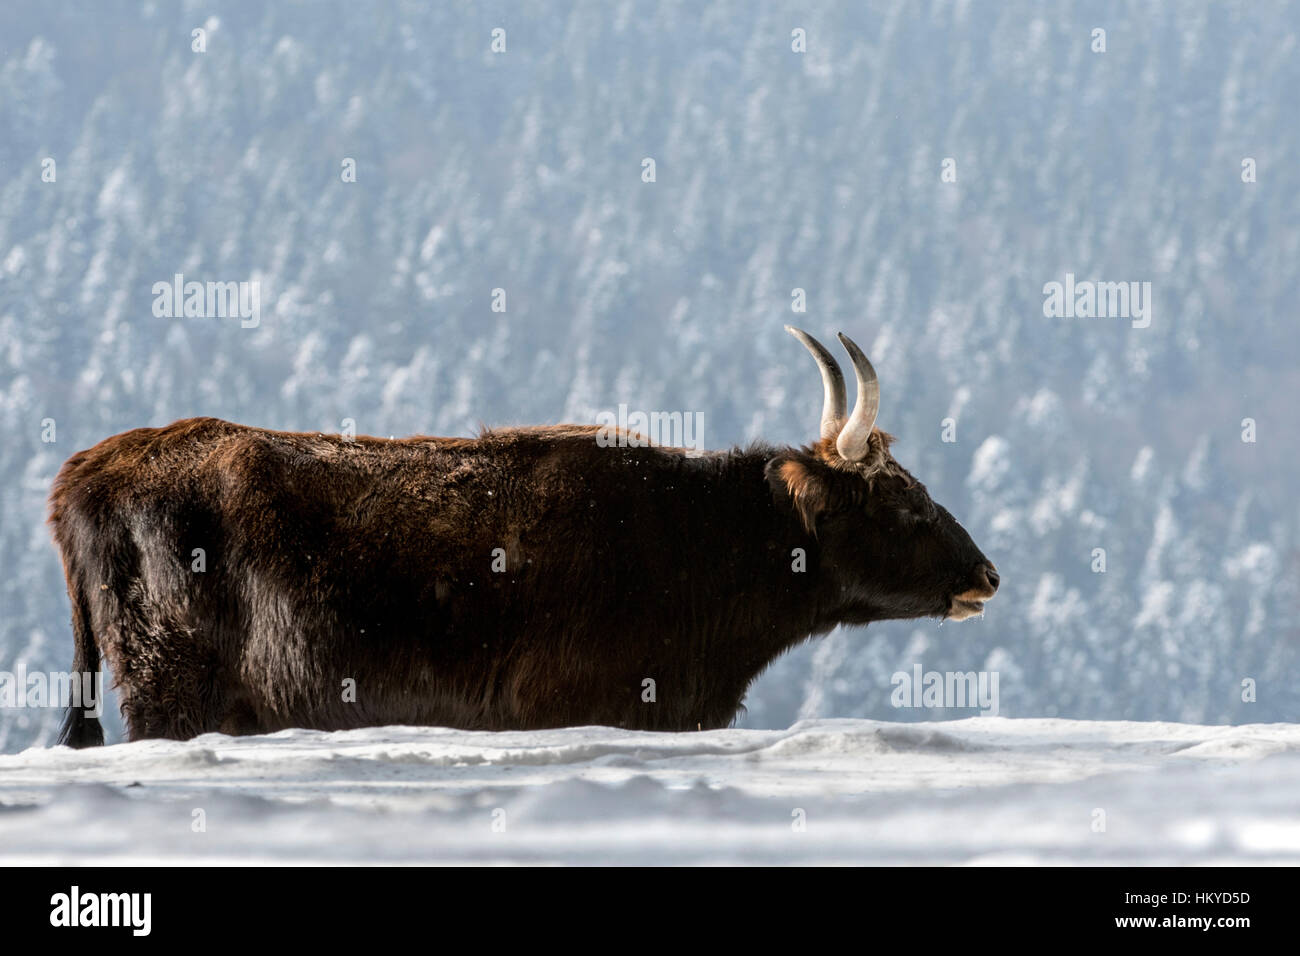 Heck cattle (Bos domesticus) cow in the snow in winter. Attempt to breed back the extinct aurochs (Bos primigenius) - Stock Image